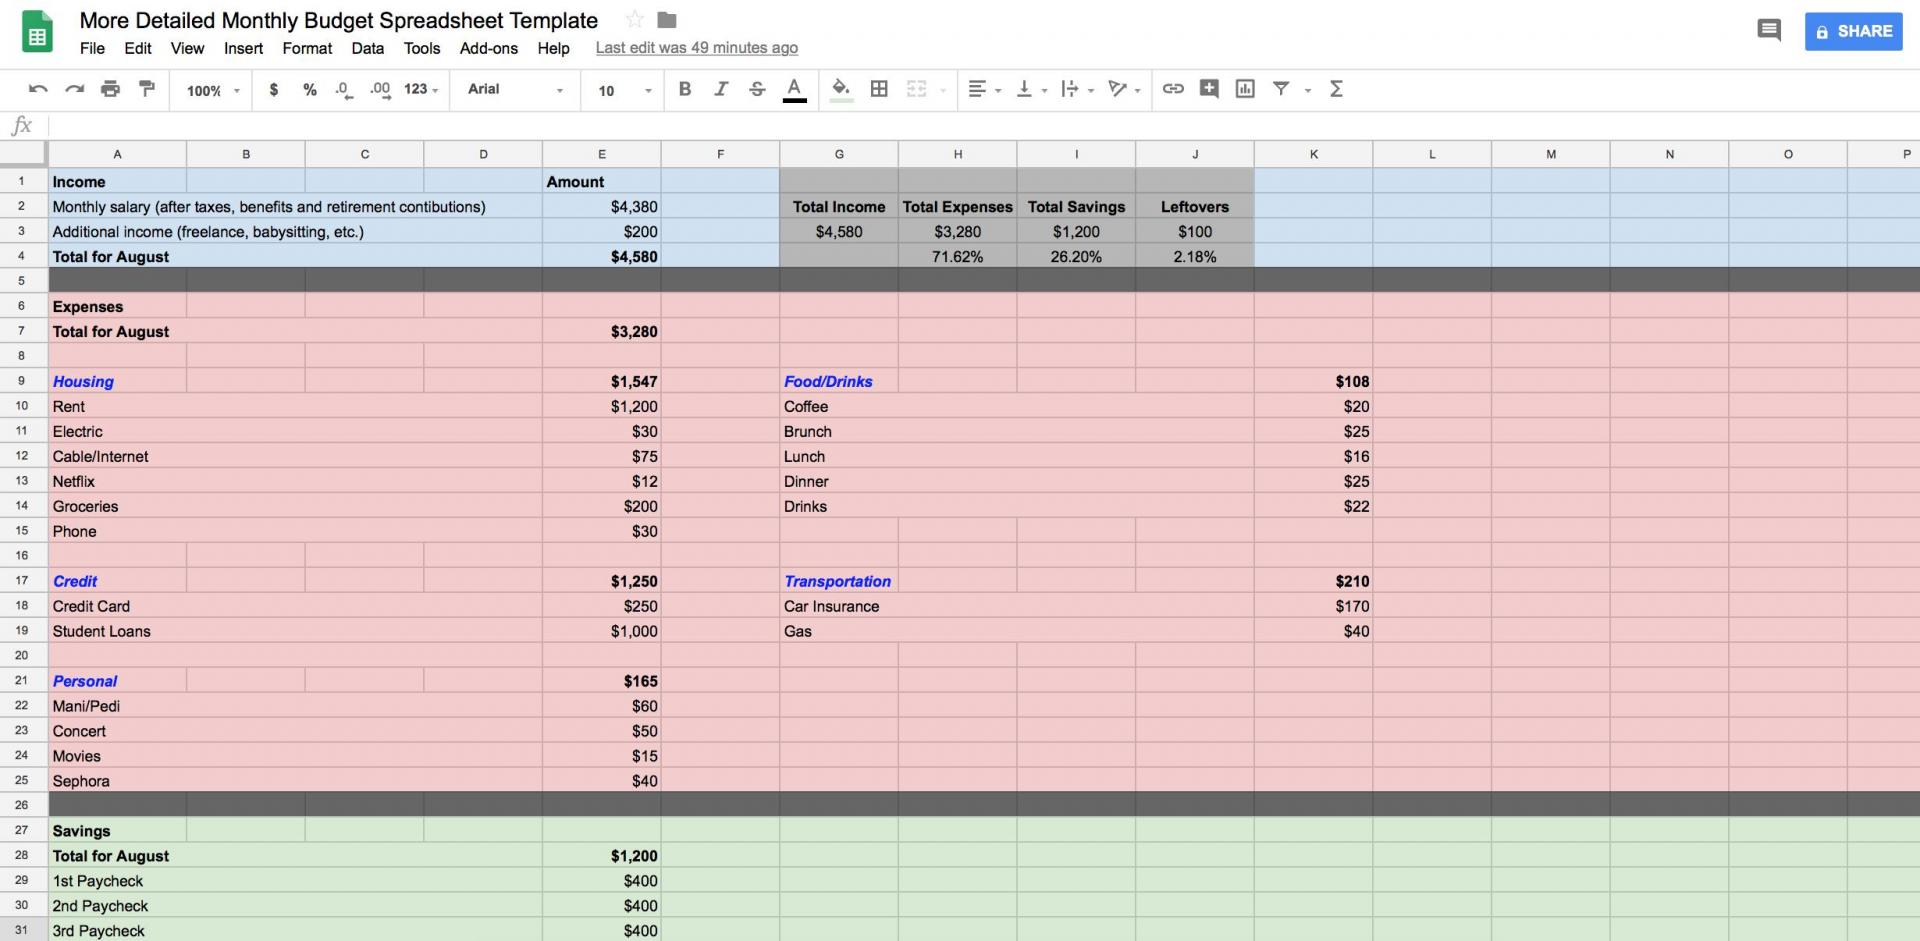 More Detailed Monthly Budget Spreadsheet